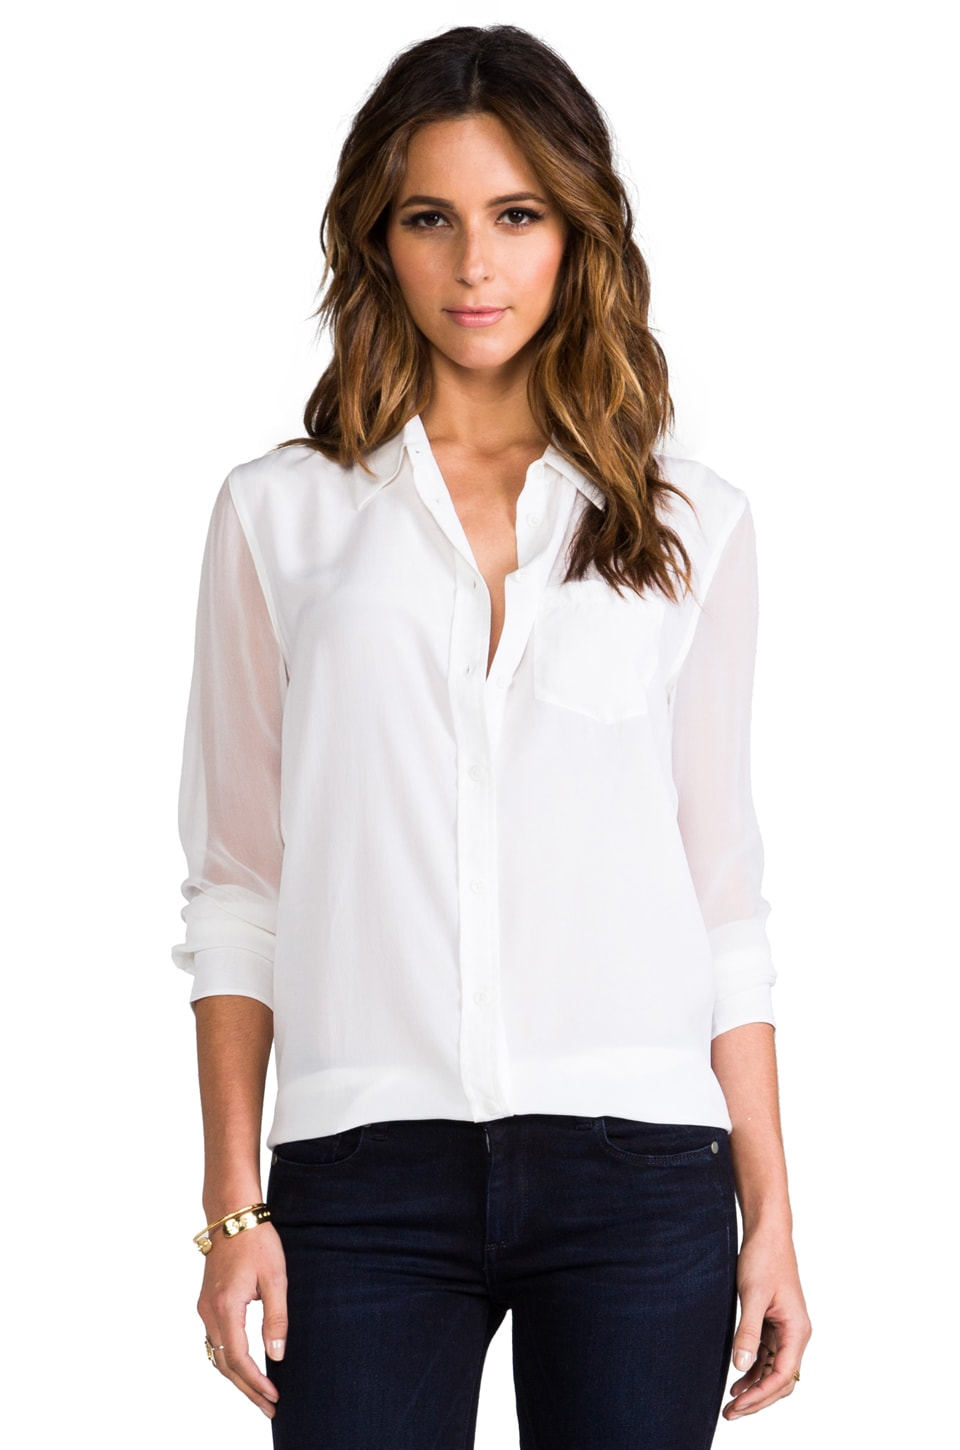 Equipment Reese Blouse w/ Contrast Sleeve in Bright White